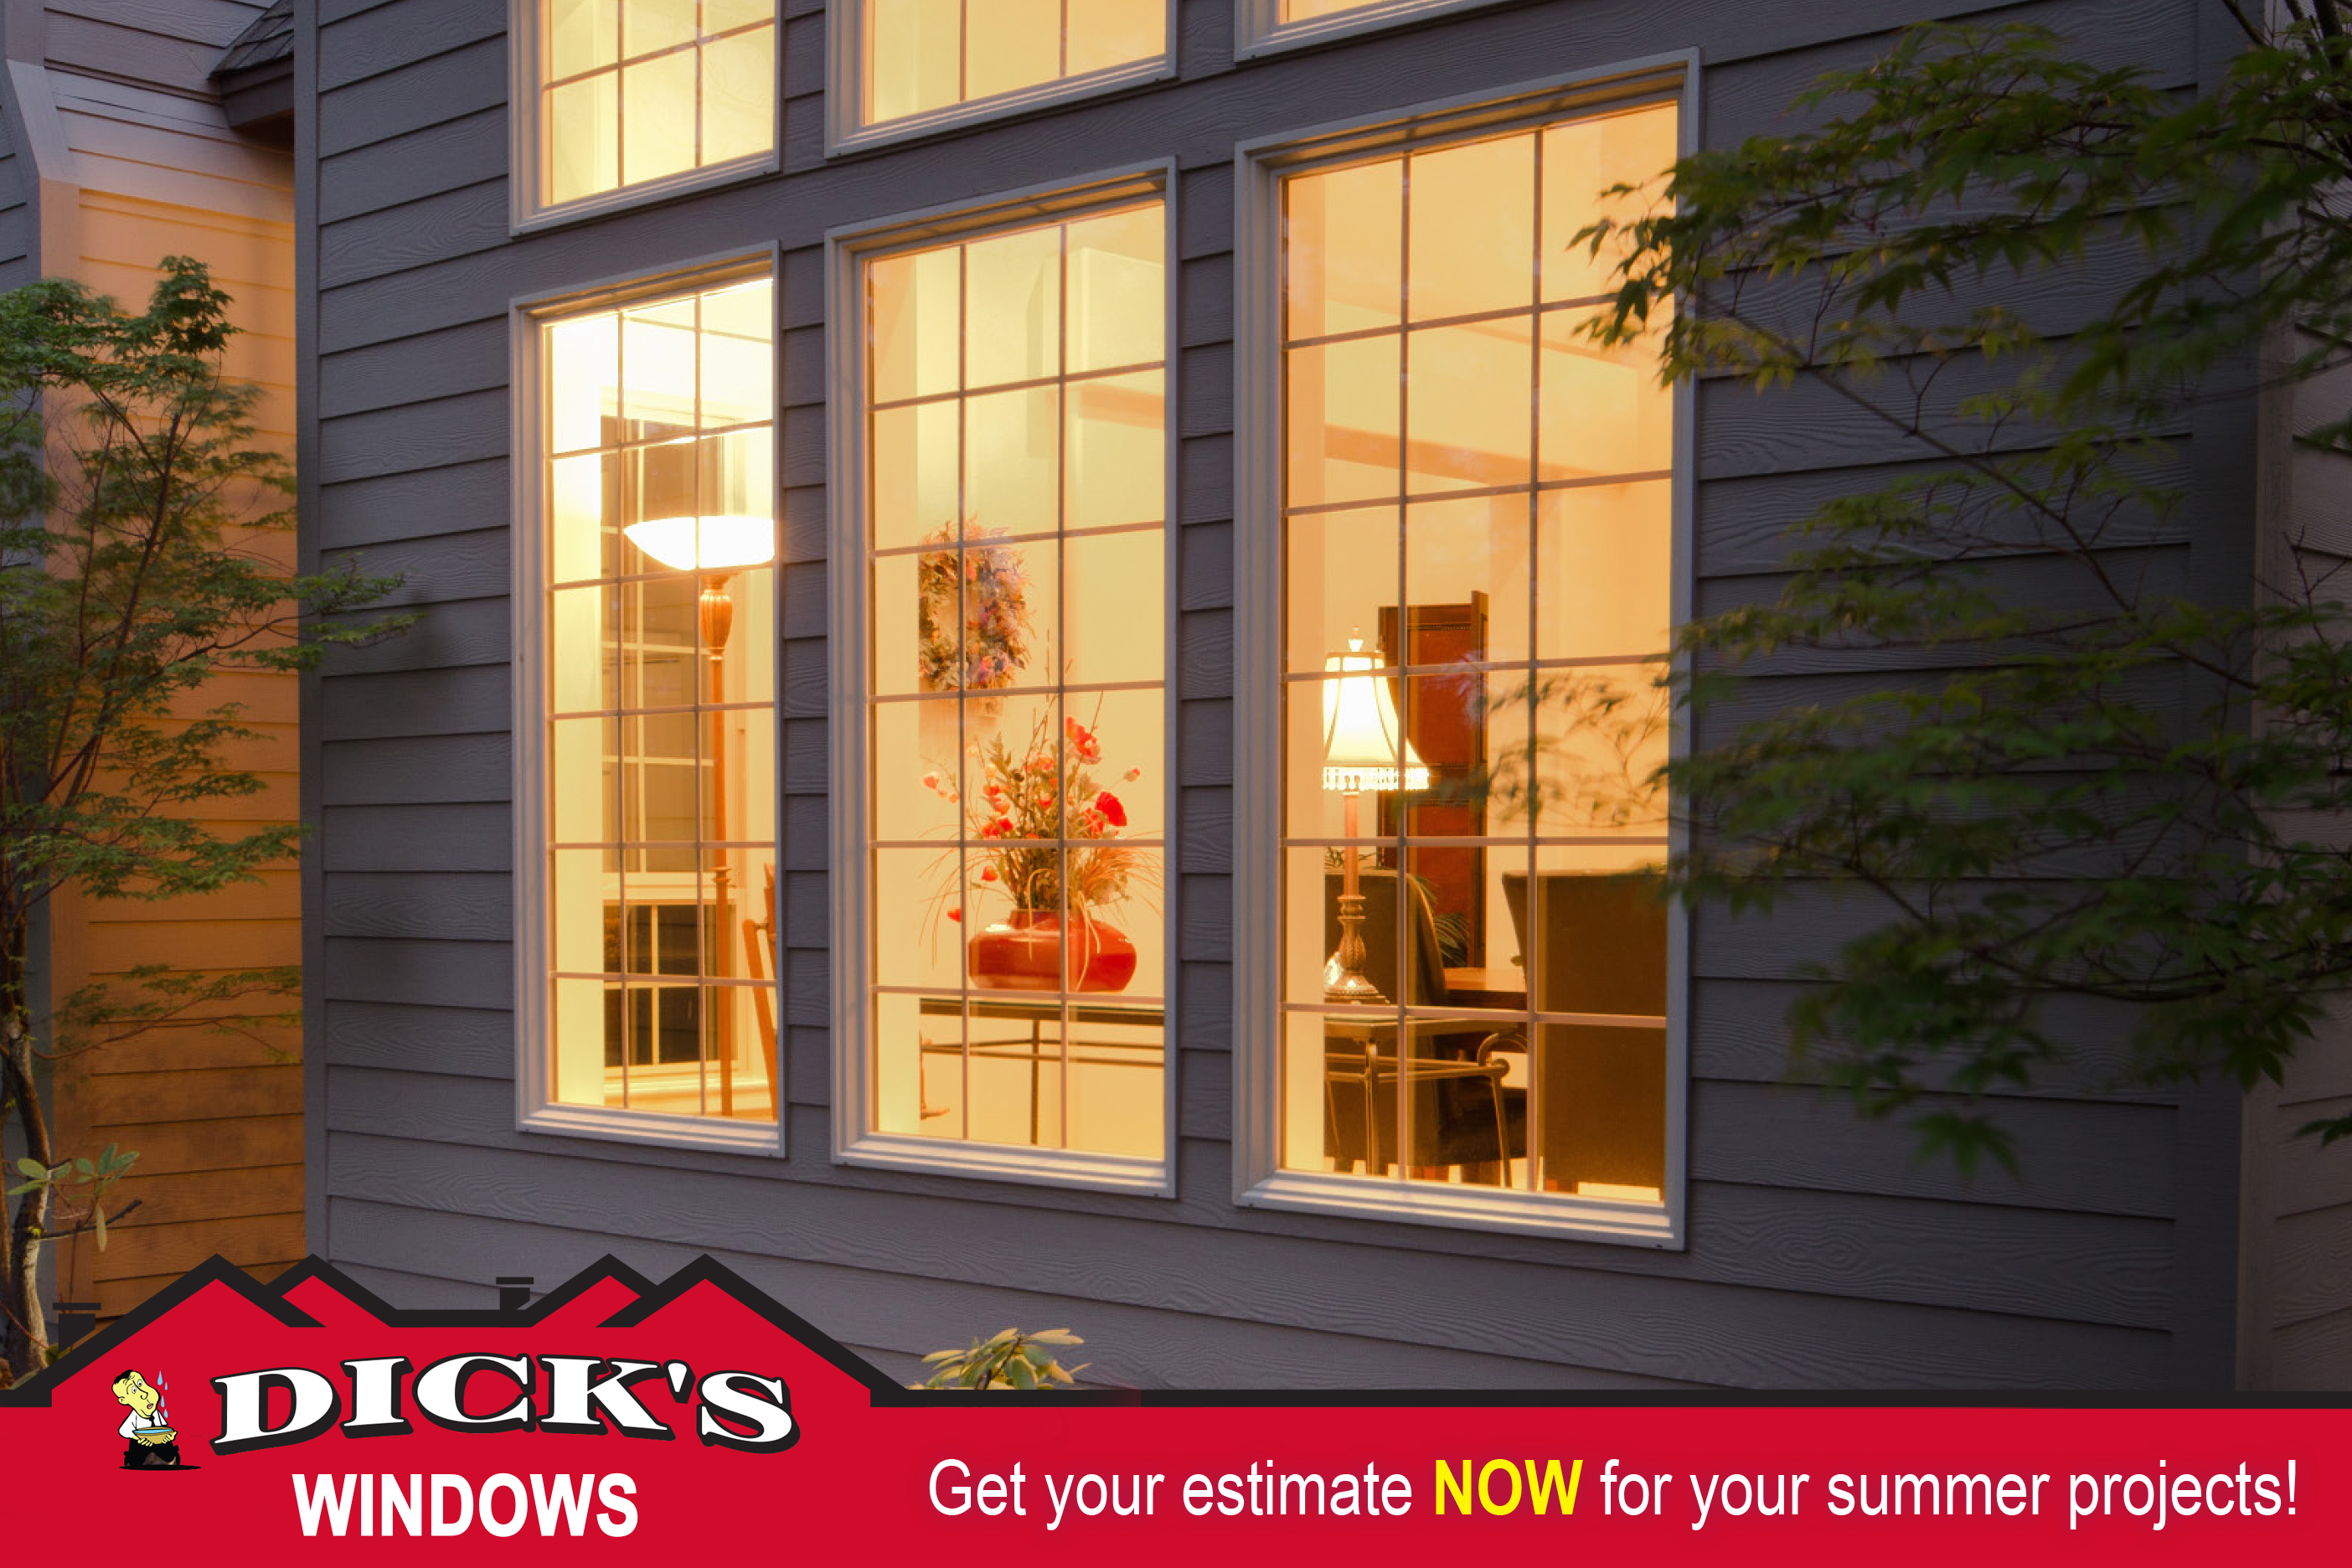 Save Money And Add Value To Your Home With New Windows From S